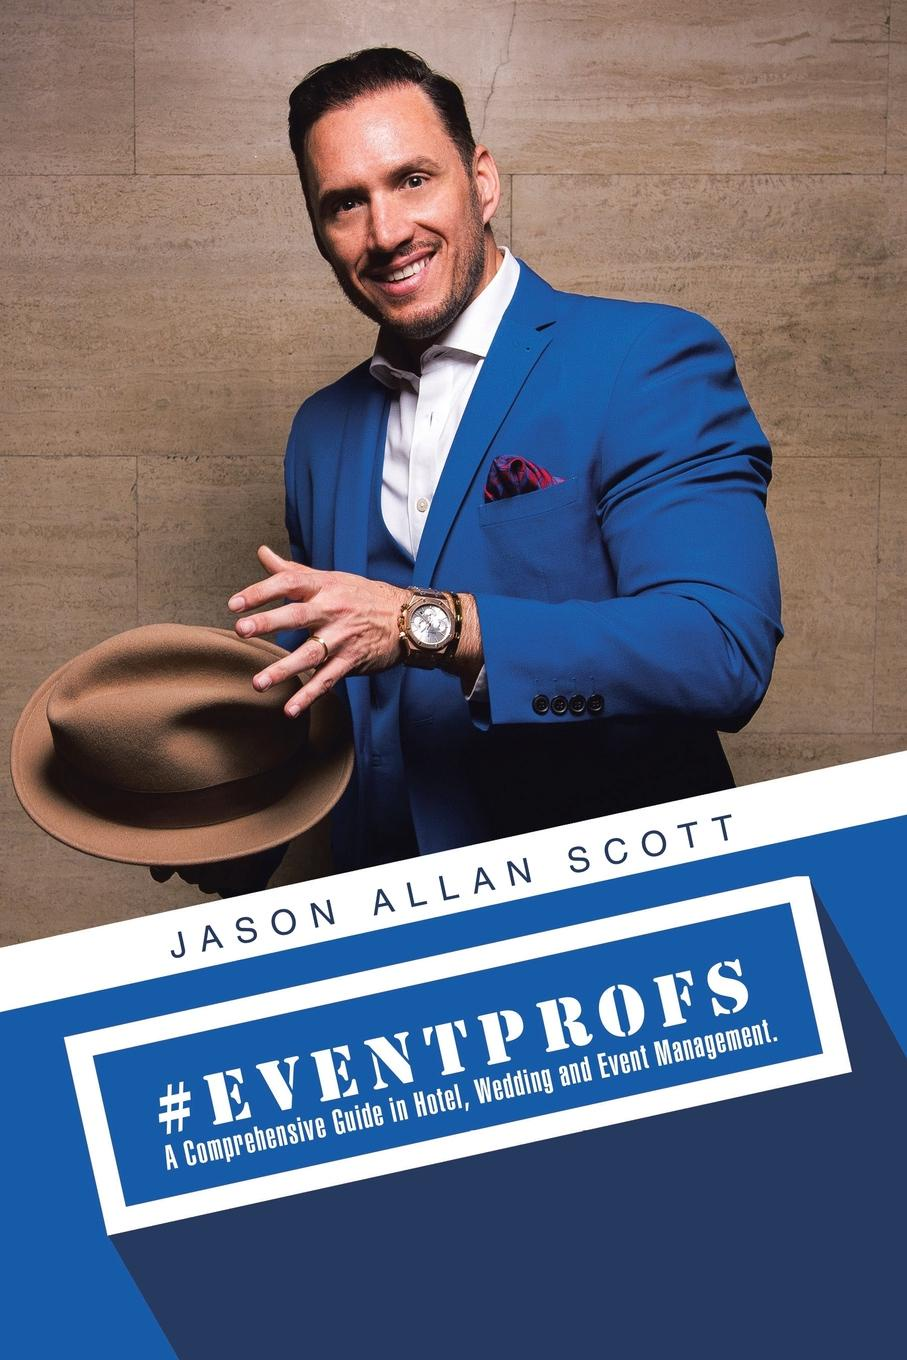 Jason Allan Scott .Eventprofs. A Comprehensive Guide in Hotel, Wedding and Event Management making your mark in hotel industry jobs